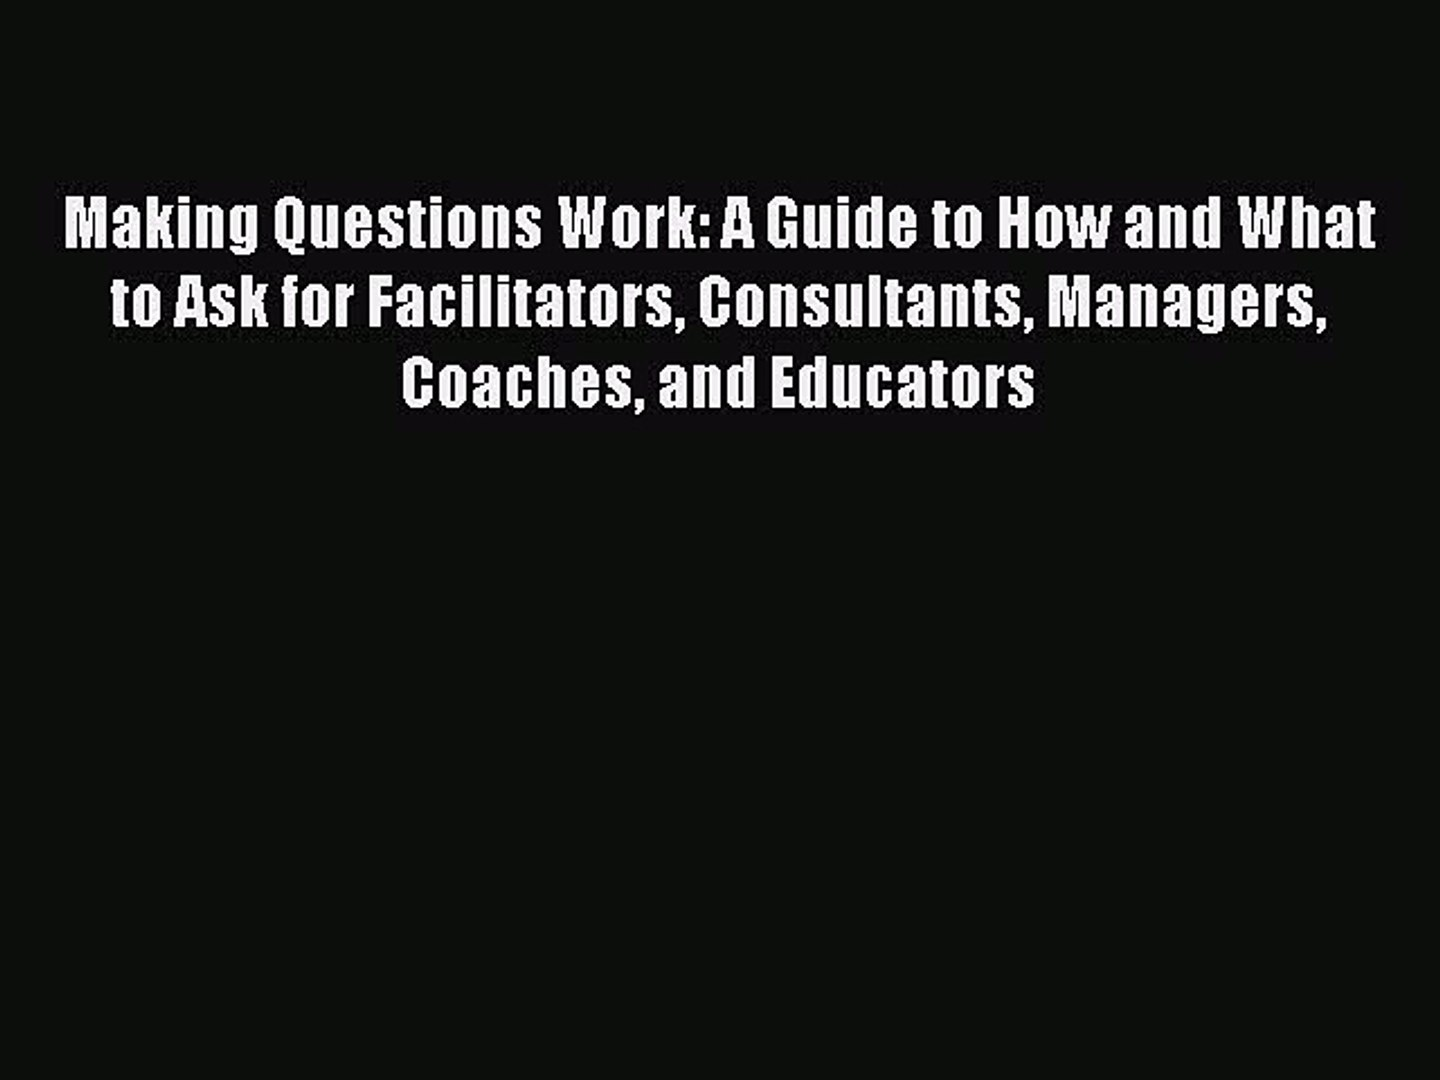 [PDF Download] Making Questions Work: A Guide to How and What to Ask for Facilitators Consultants